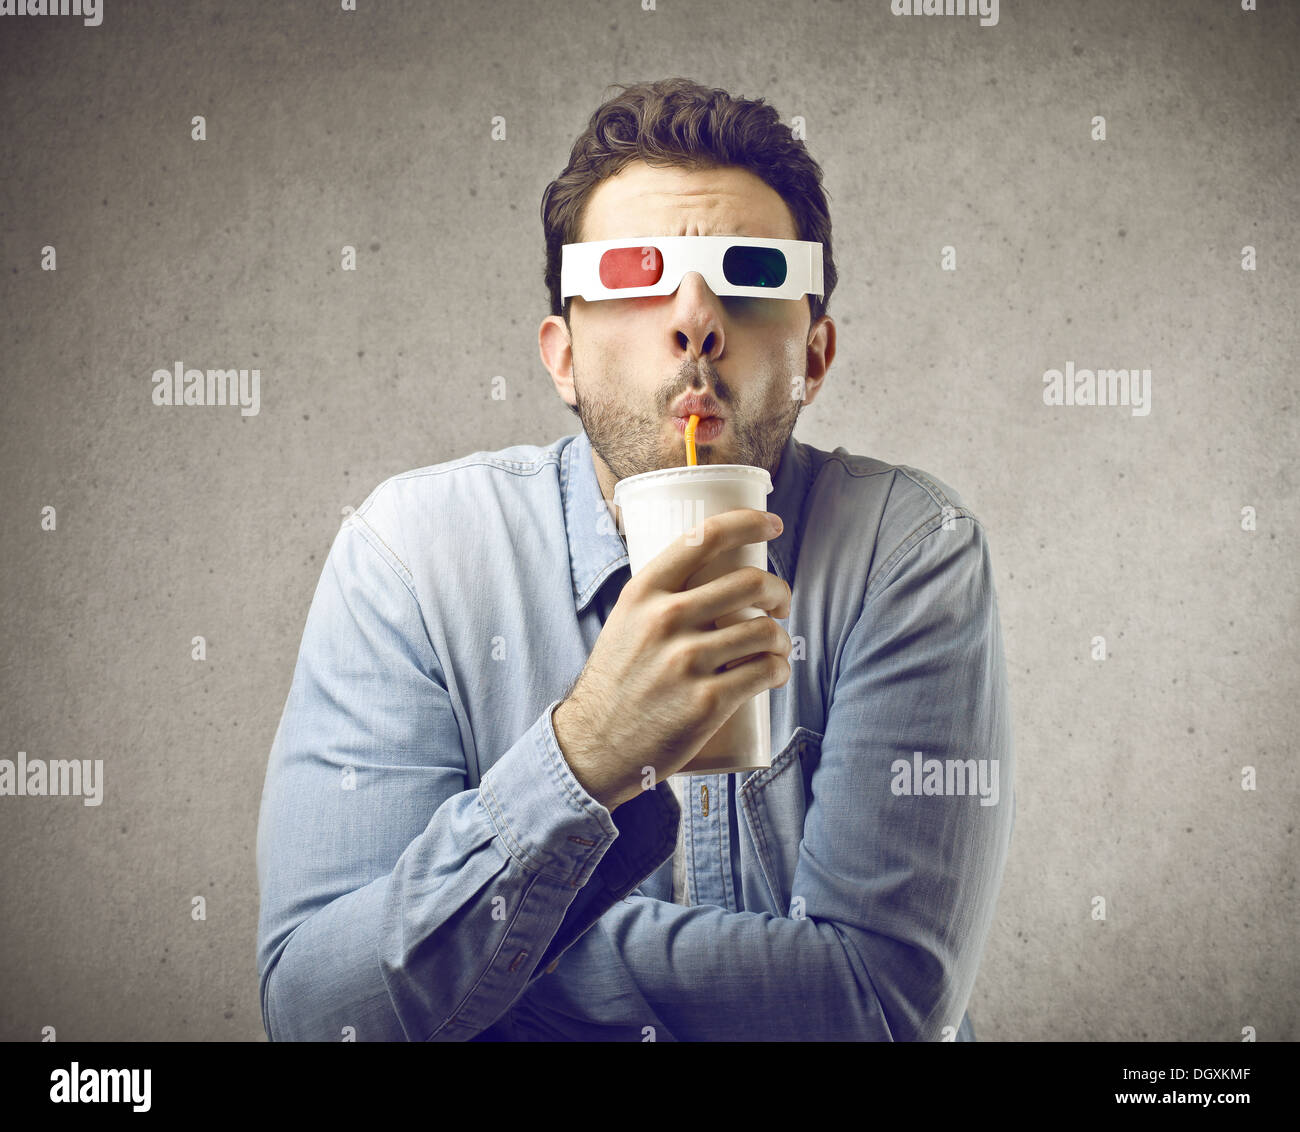 Man with tridimensional glasses drinking a soda with a straw - Stock Image